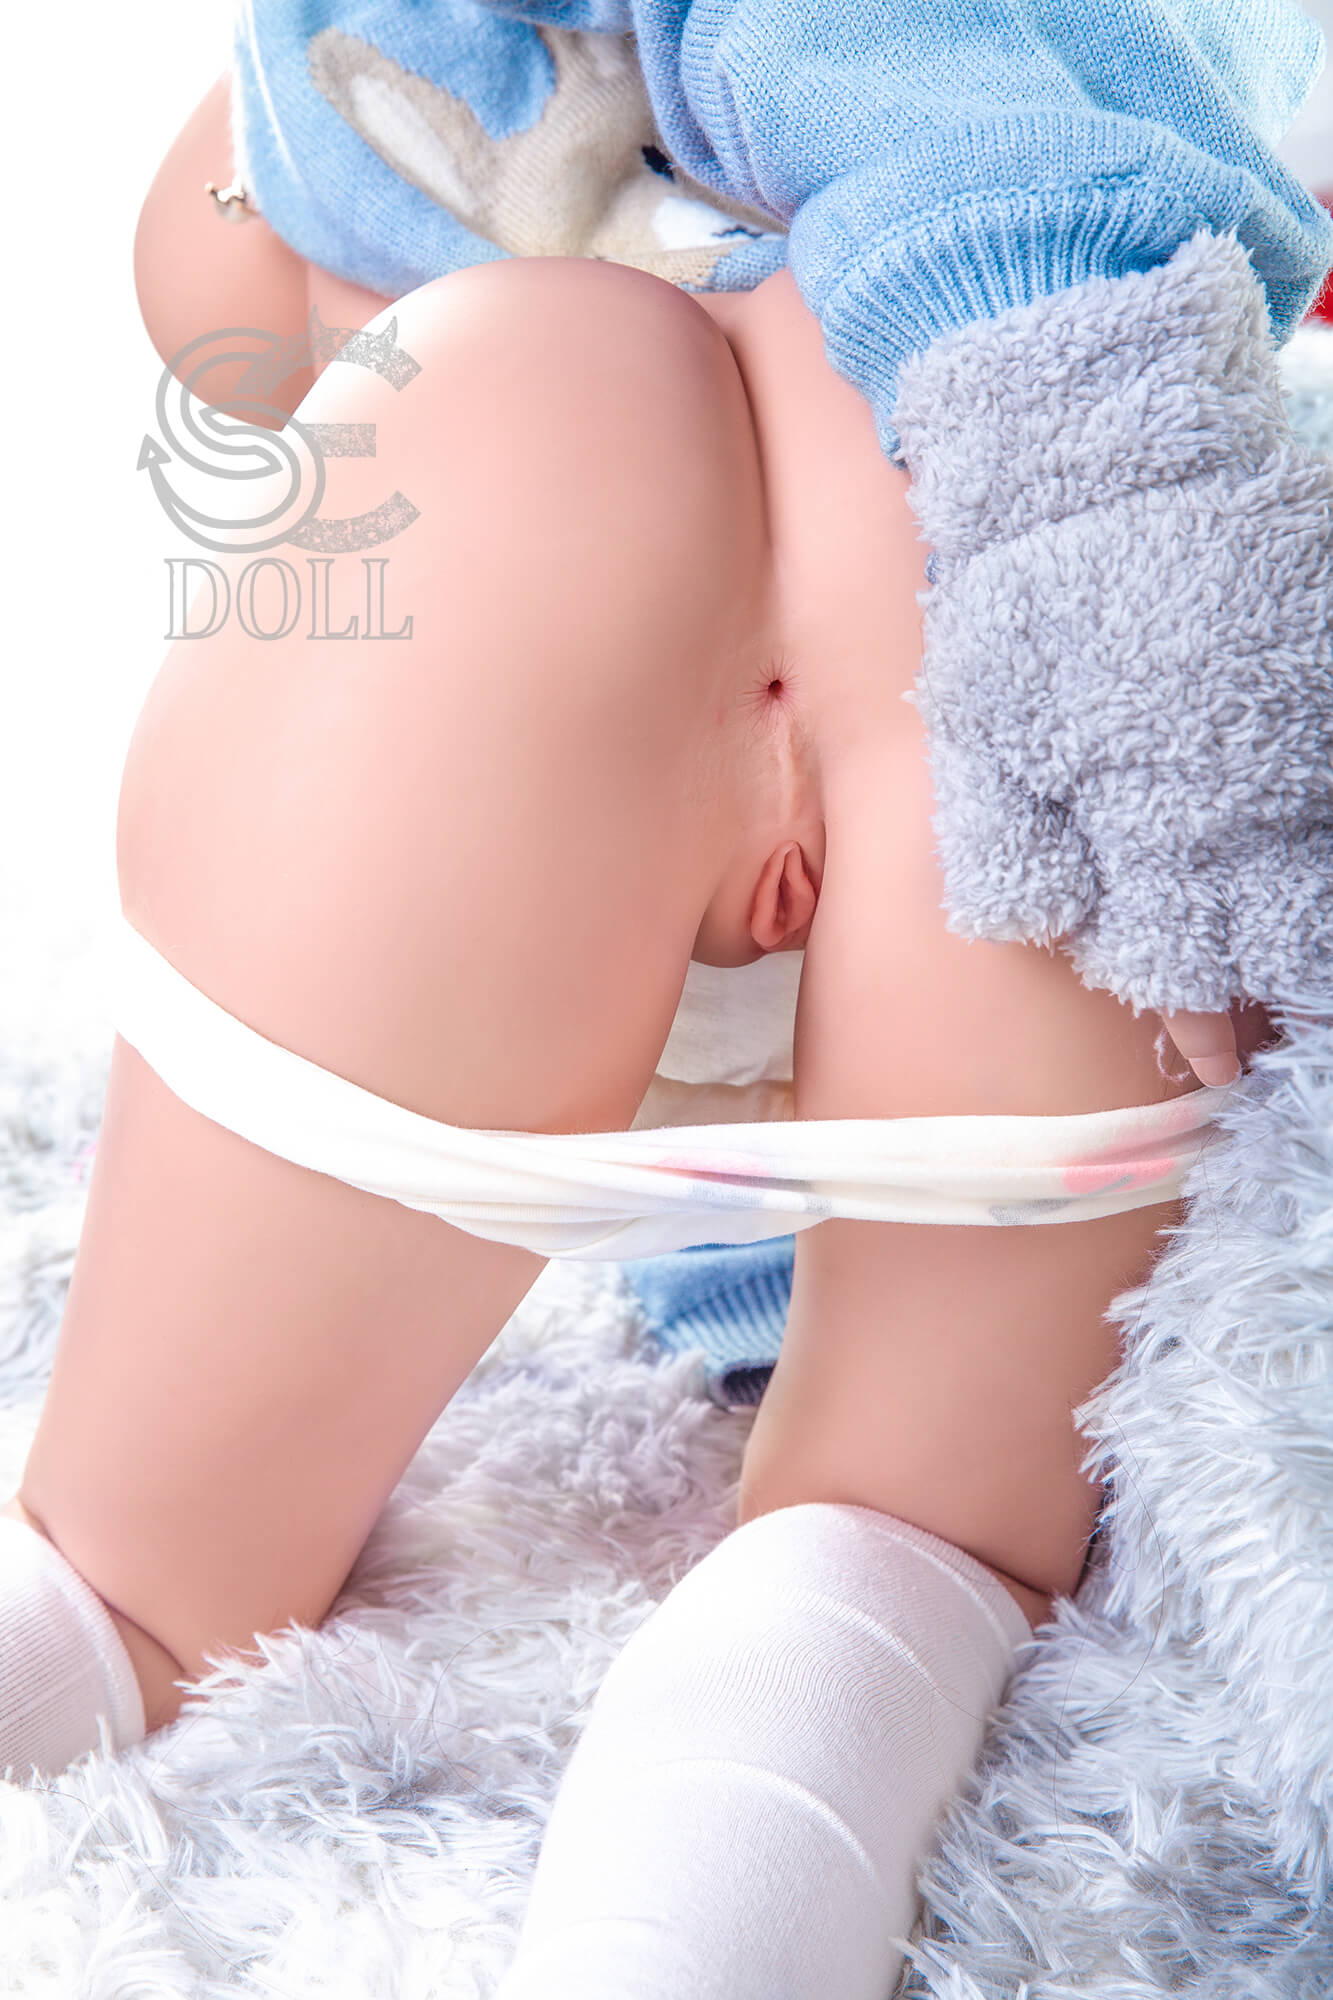 Charlie Japanese Cute Sex Dolls-Real Life Adult Dolls - Best Sex Dolls